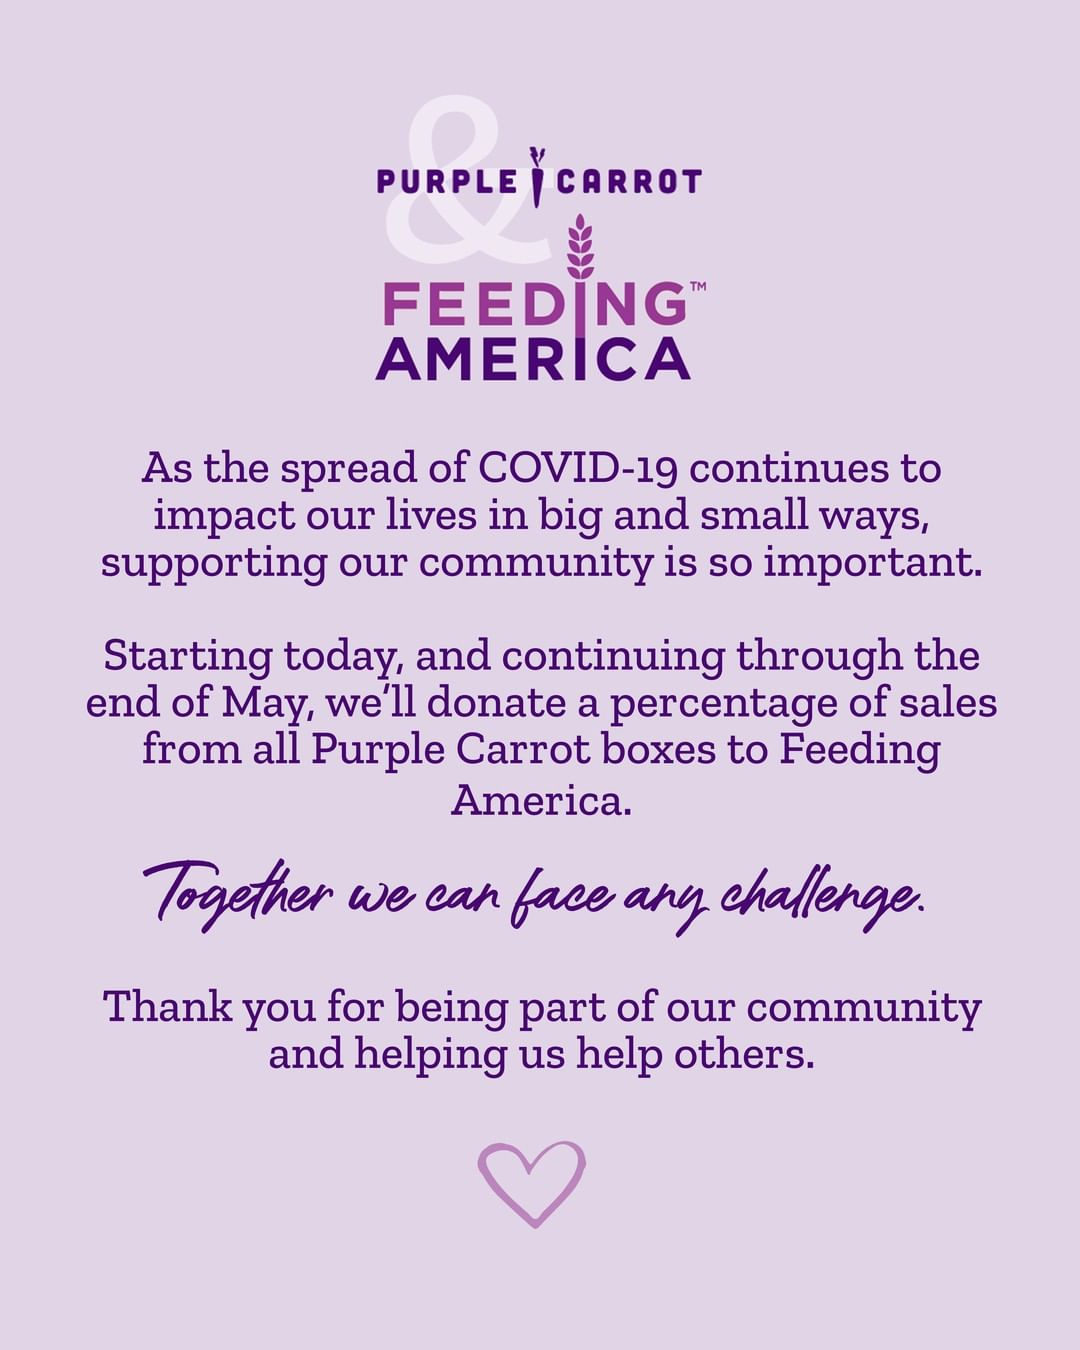 Purple Carrot's Feeding America contributions.